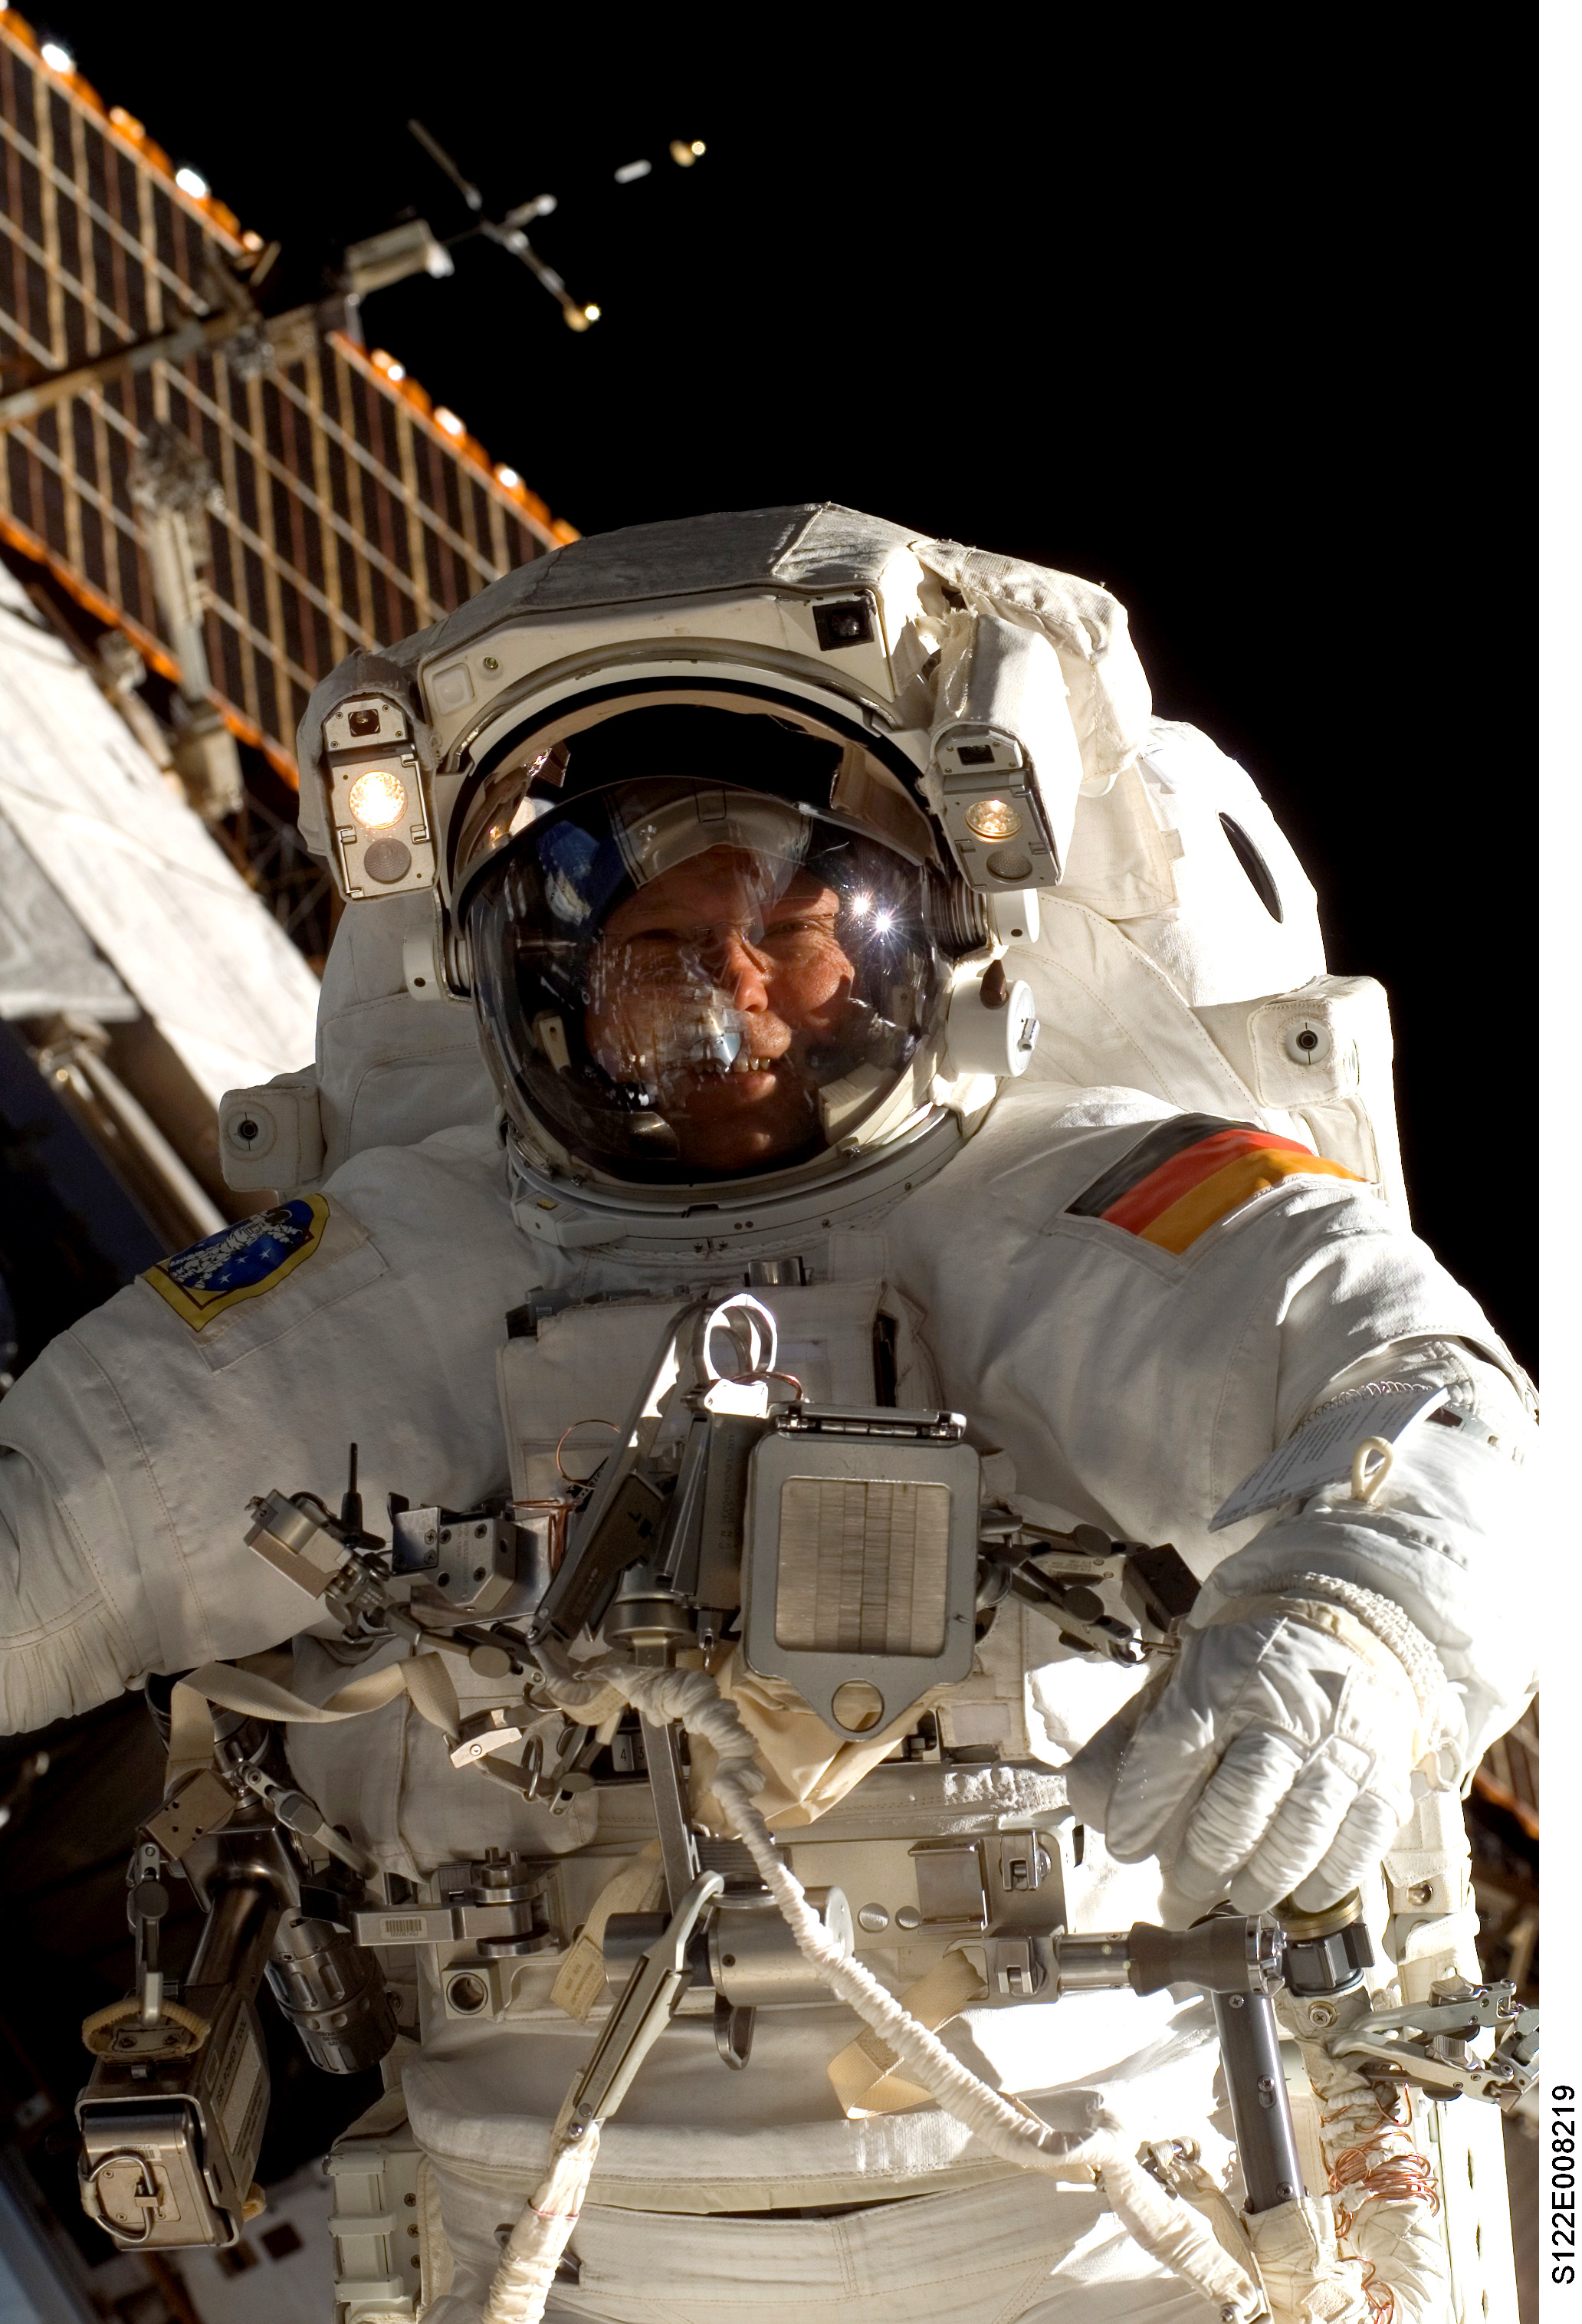 first esa astronaut in space - photo #22